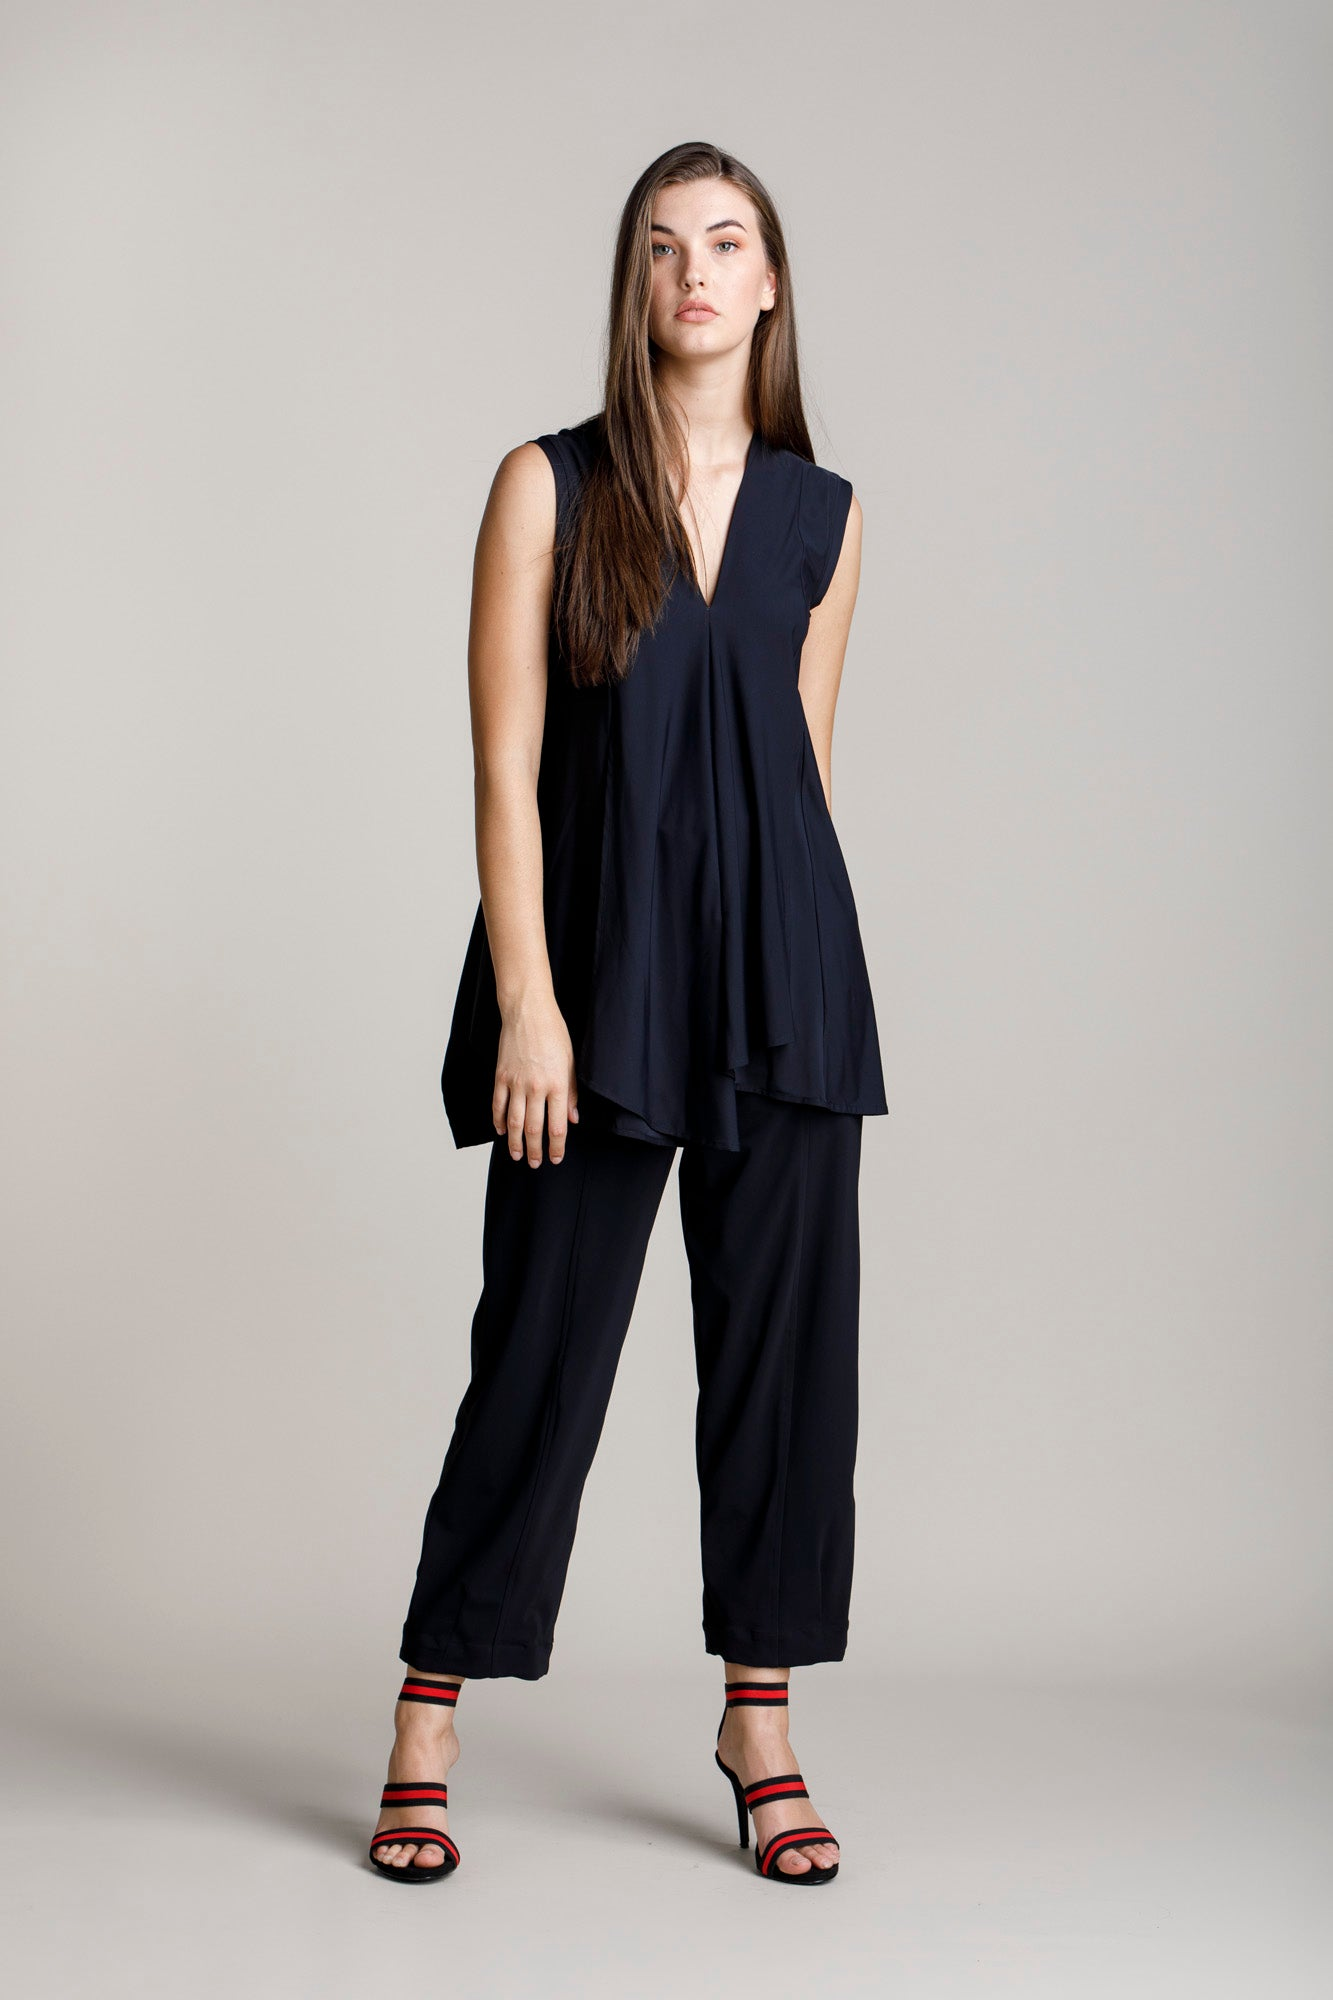 Black jersey hip pocket pant with a wide leg and cropped length, Australian made